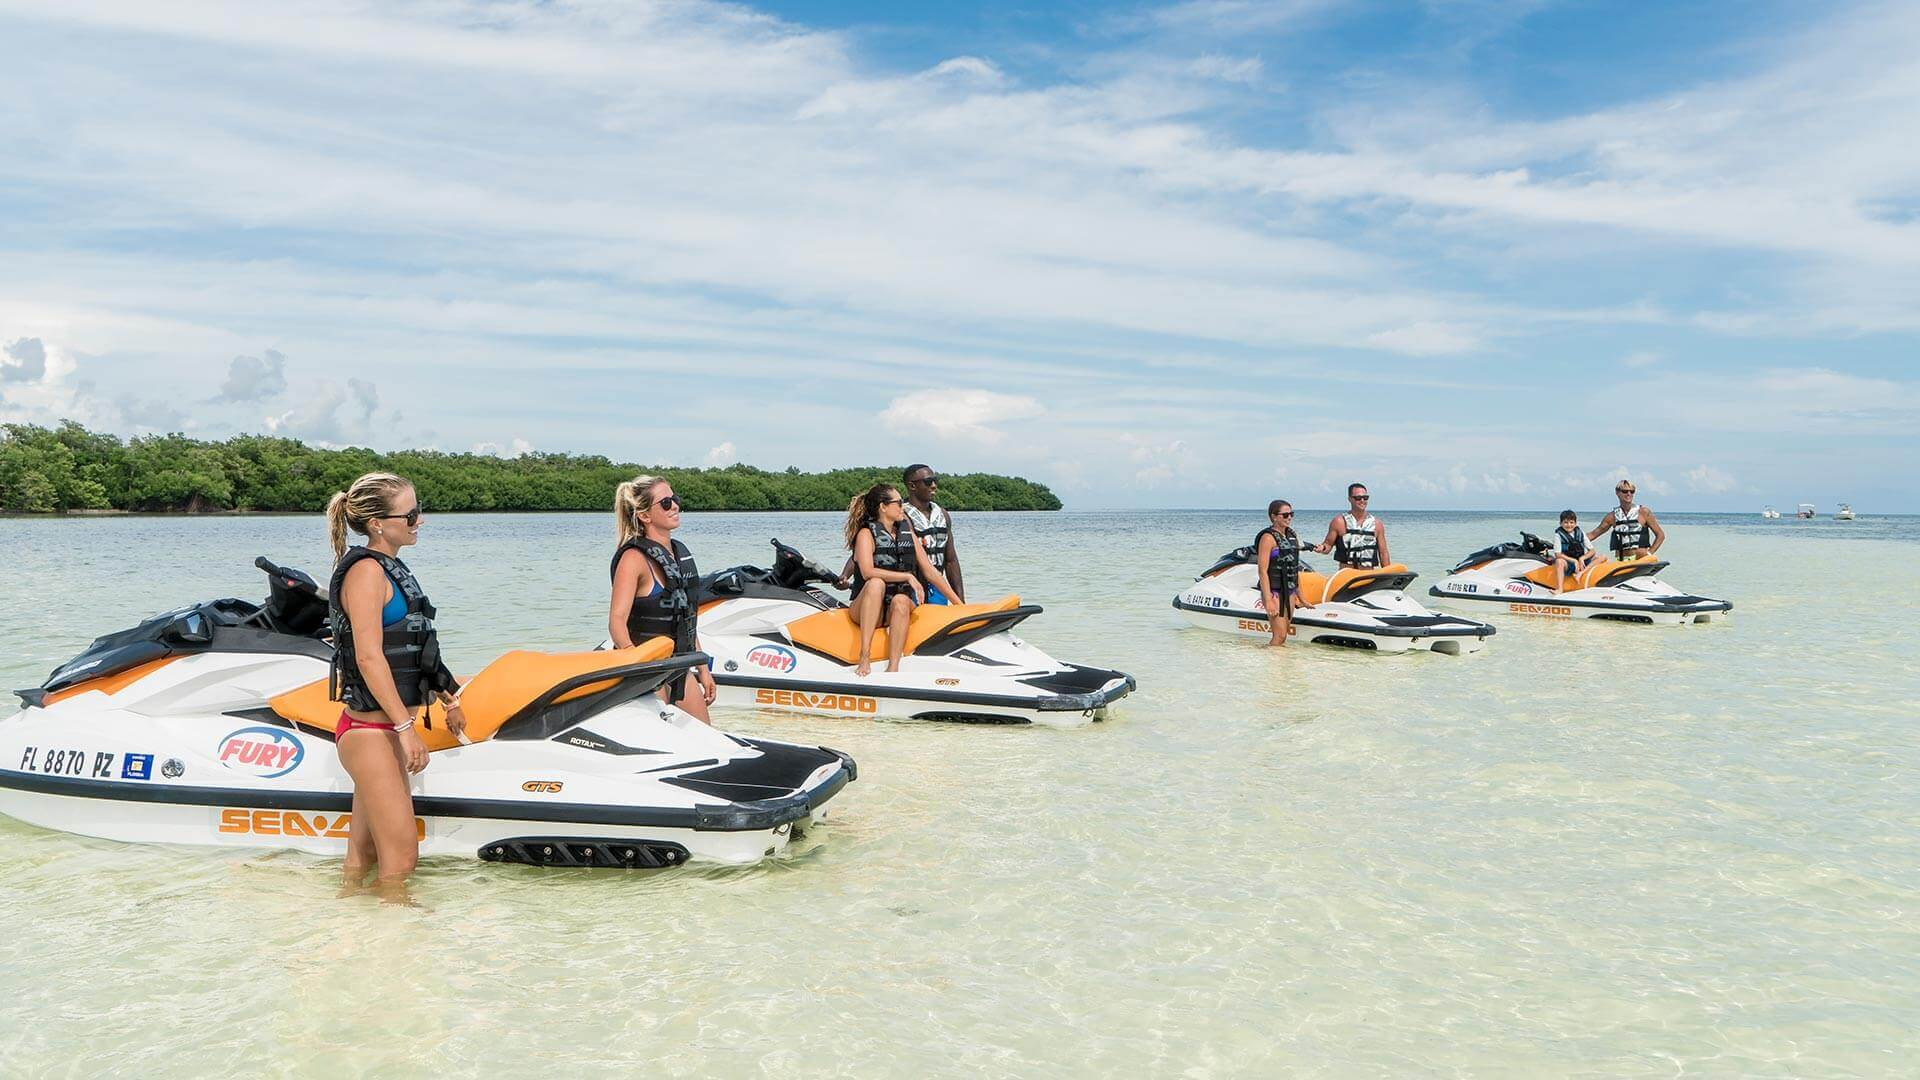 People making a stop during the Fury Jet Ski Tour in Key West